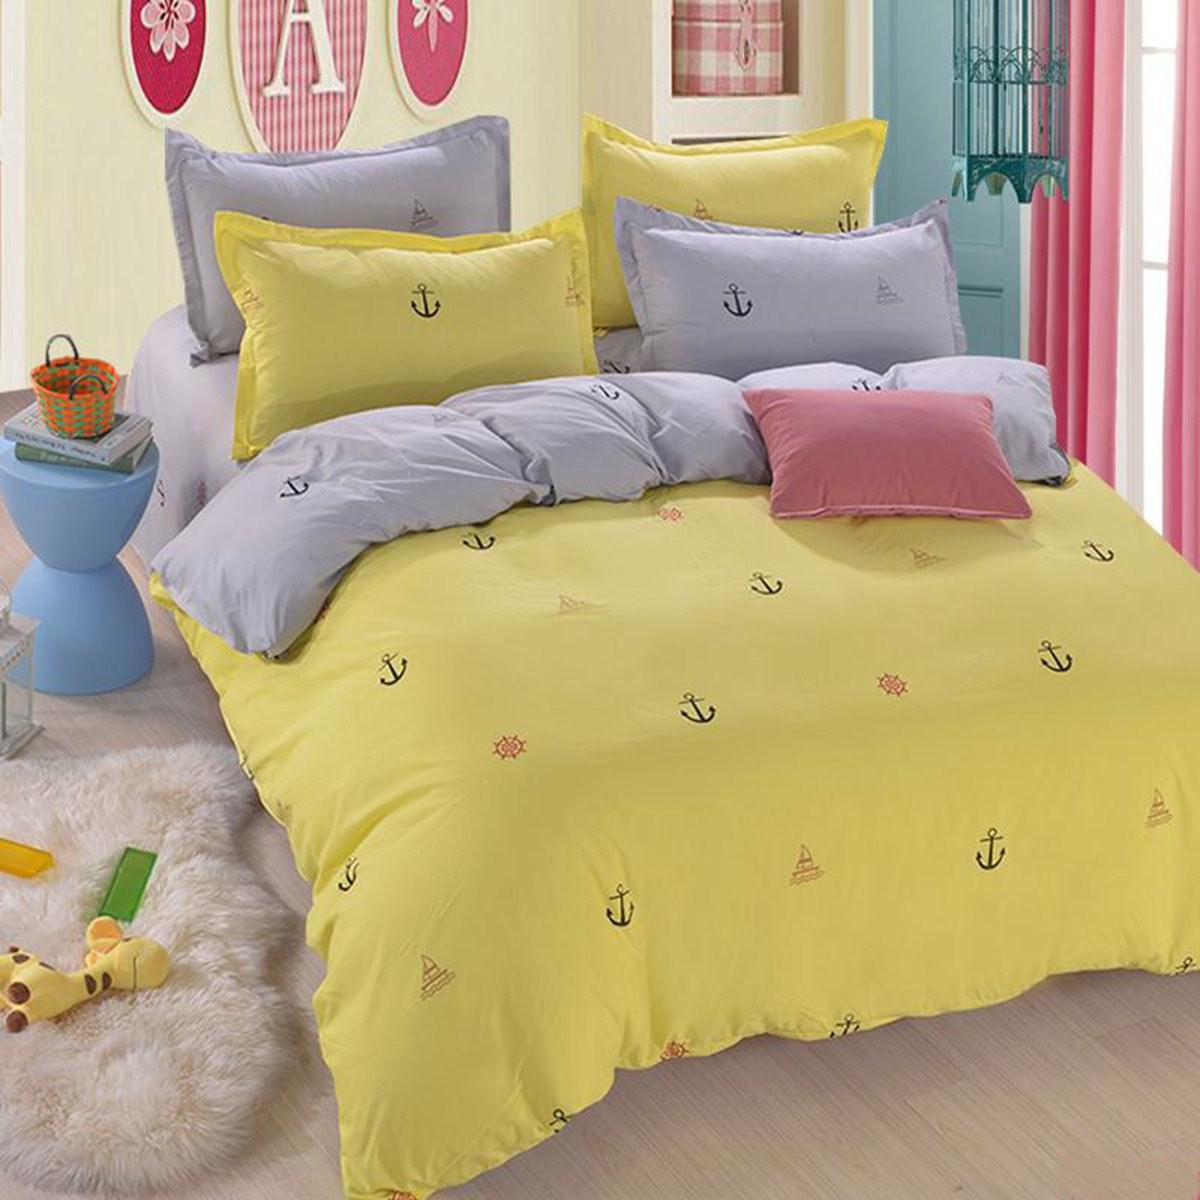 Hot Yellow Seafaring Printd Bedding Set Cotton Duvet Cover